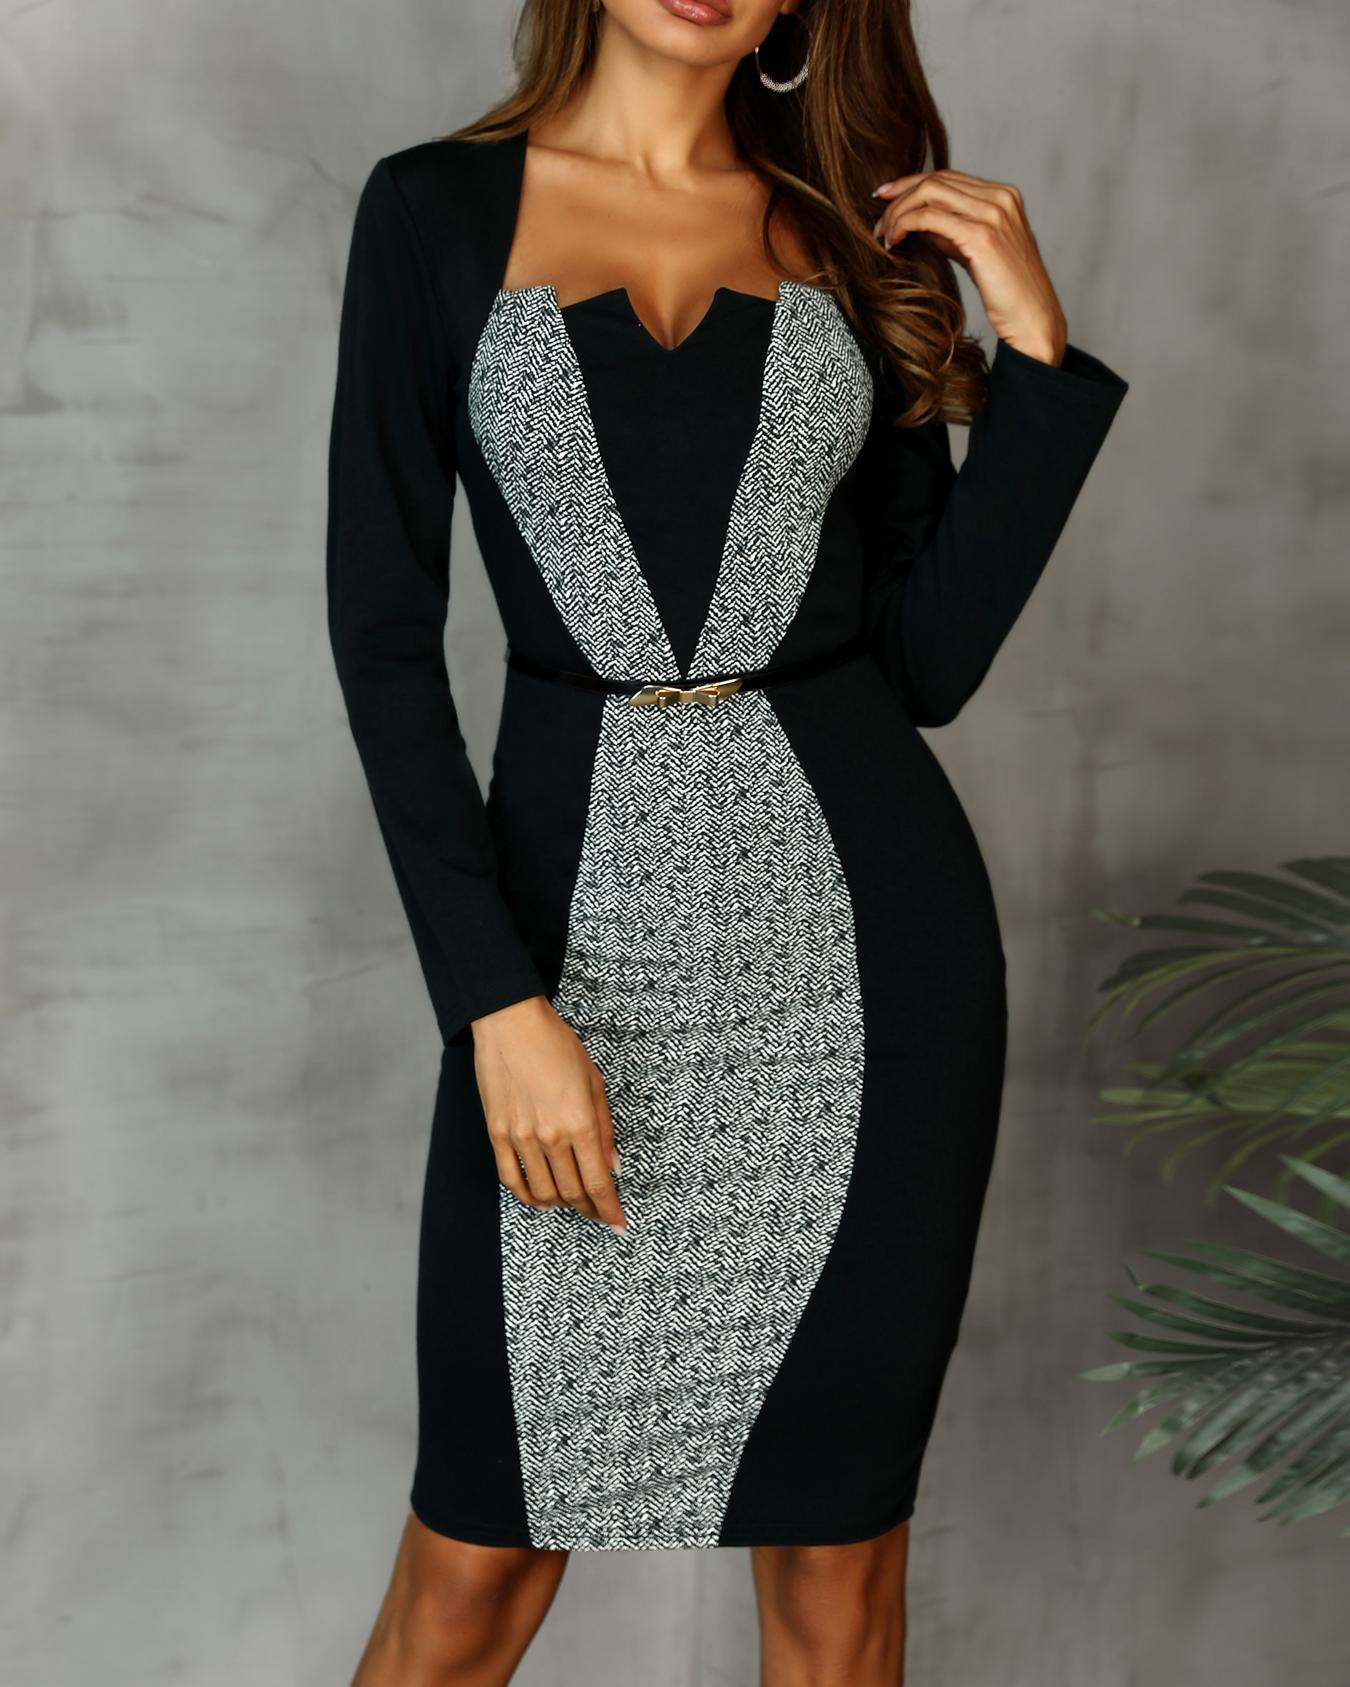 Two Tone Cut And Sew Bodycon Dress